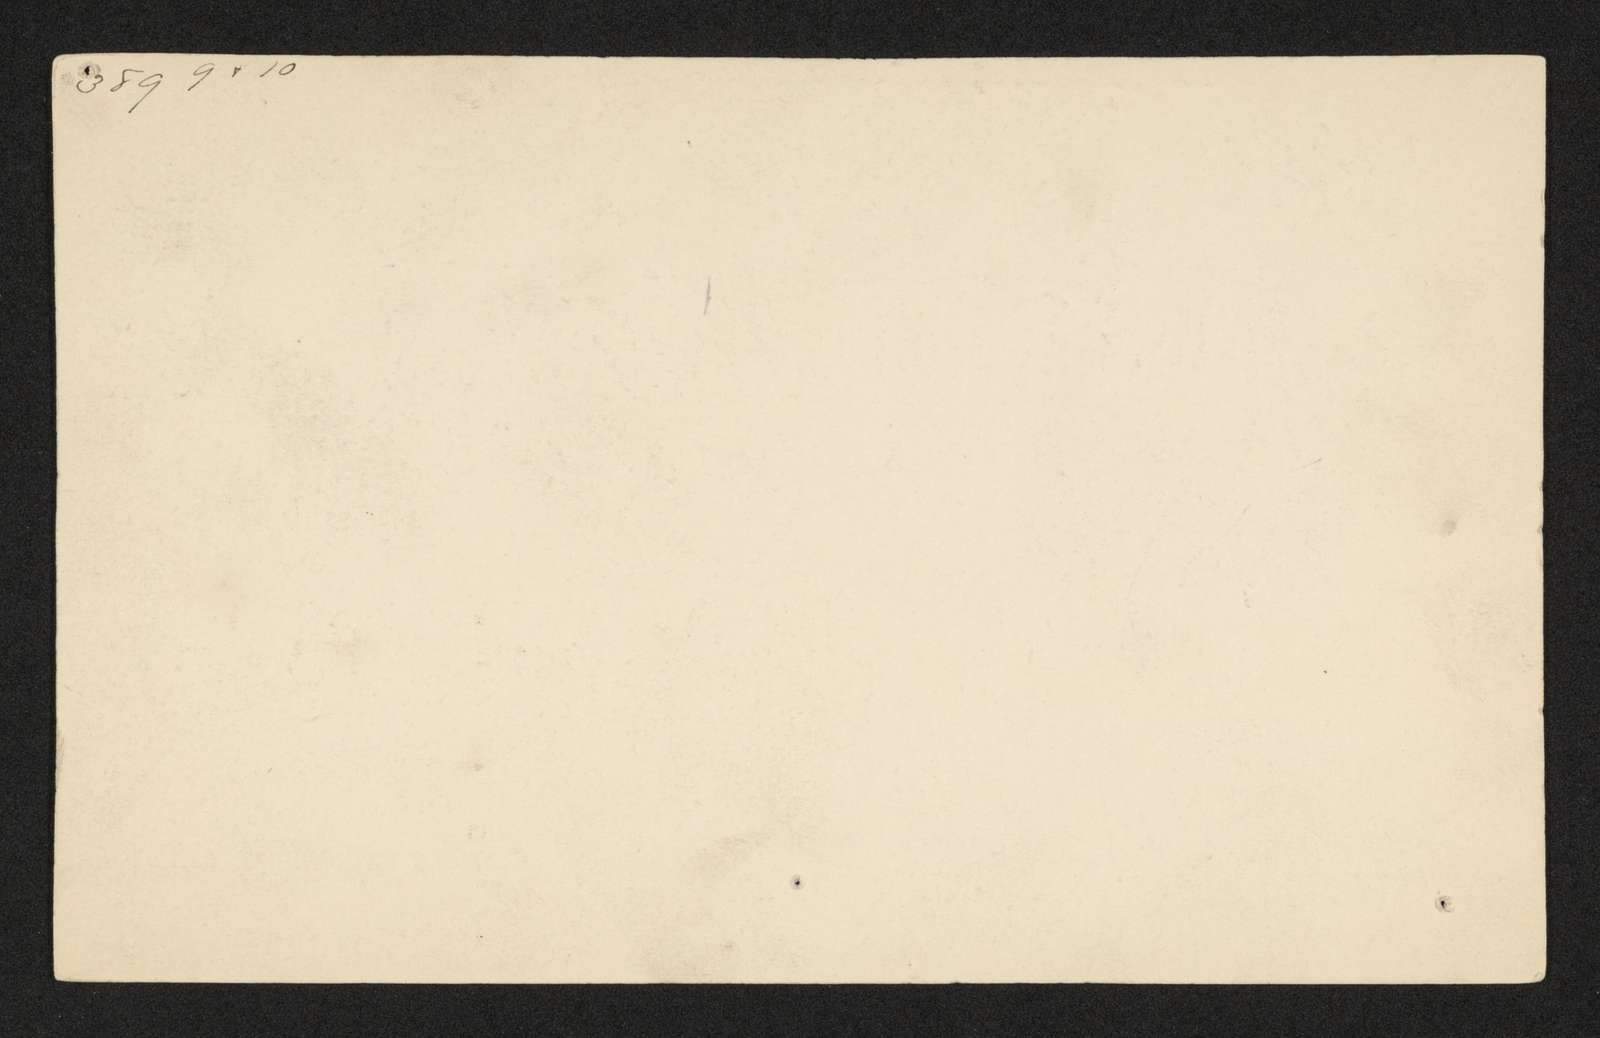 Charles Wellington Reed Papers: Drawings, sketches, and prints, 1870, 1884, undated; Folder 2 of 2